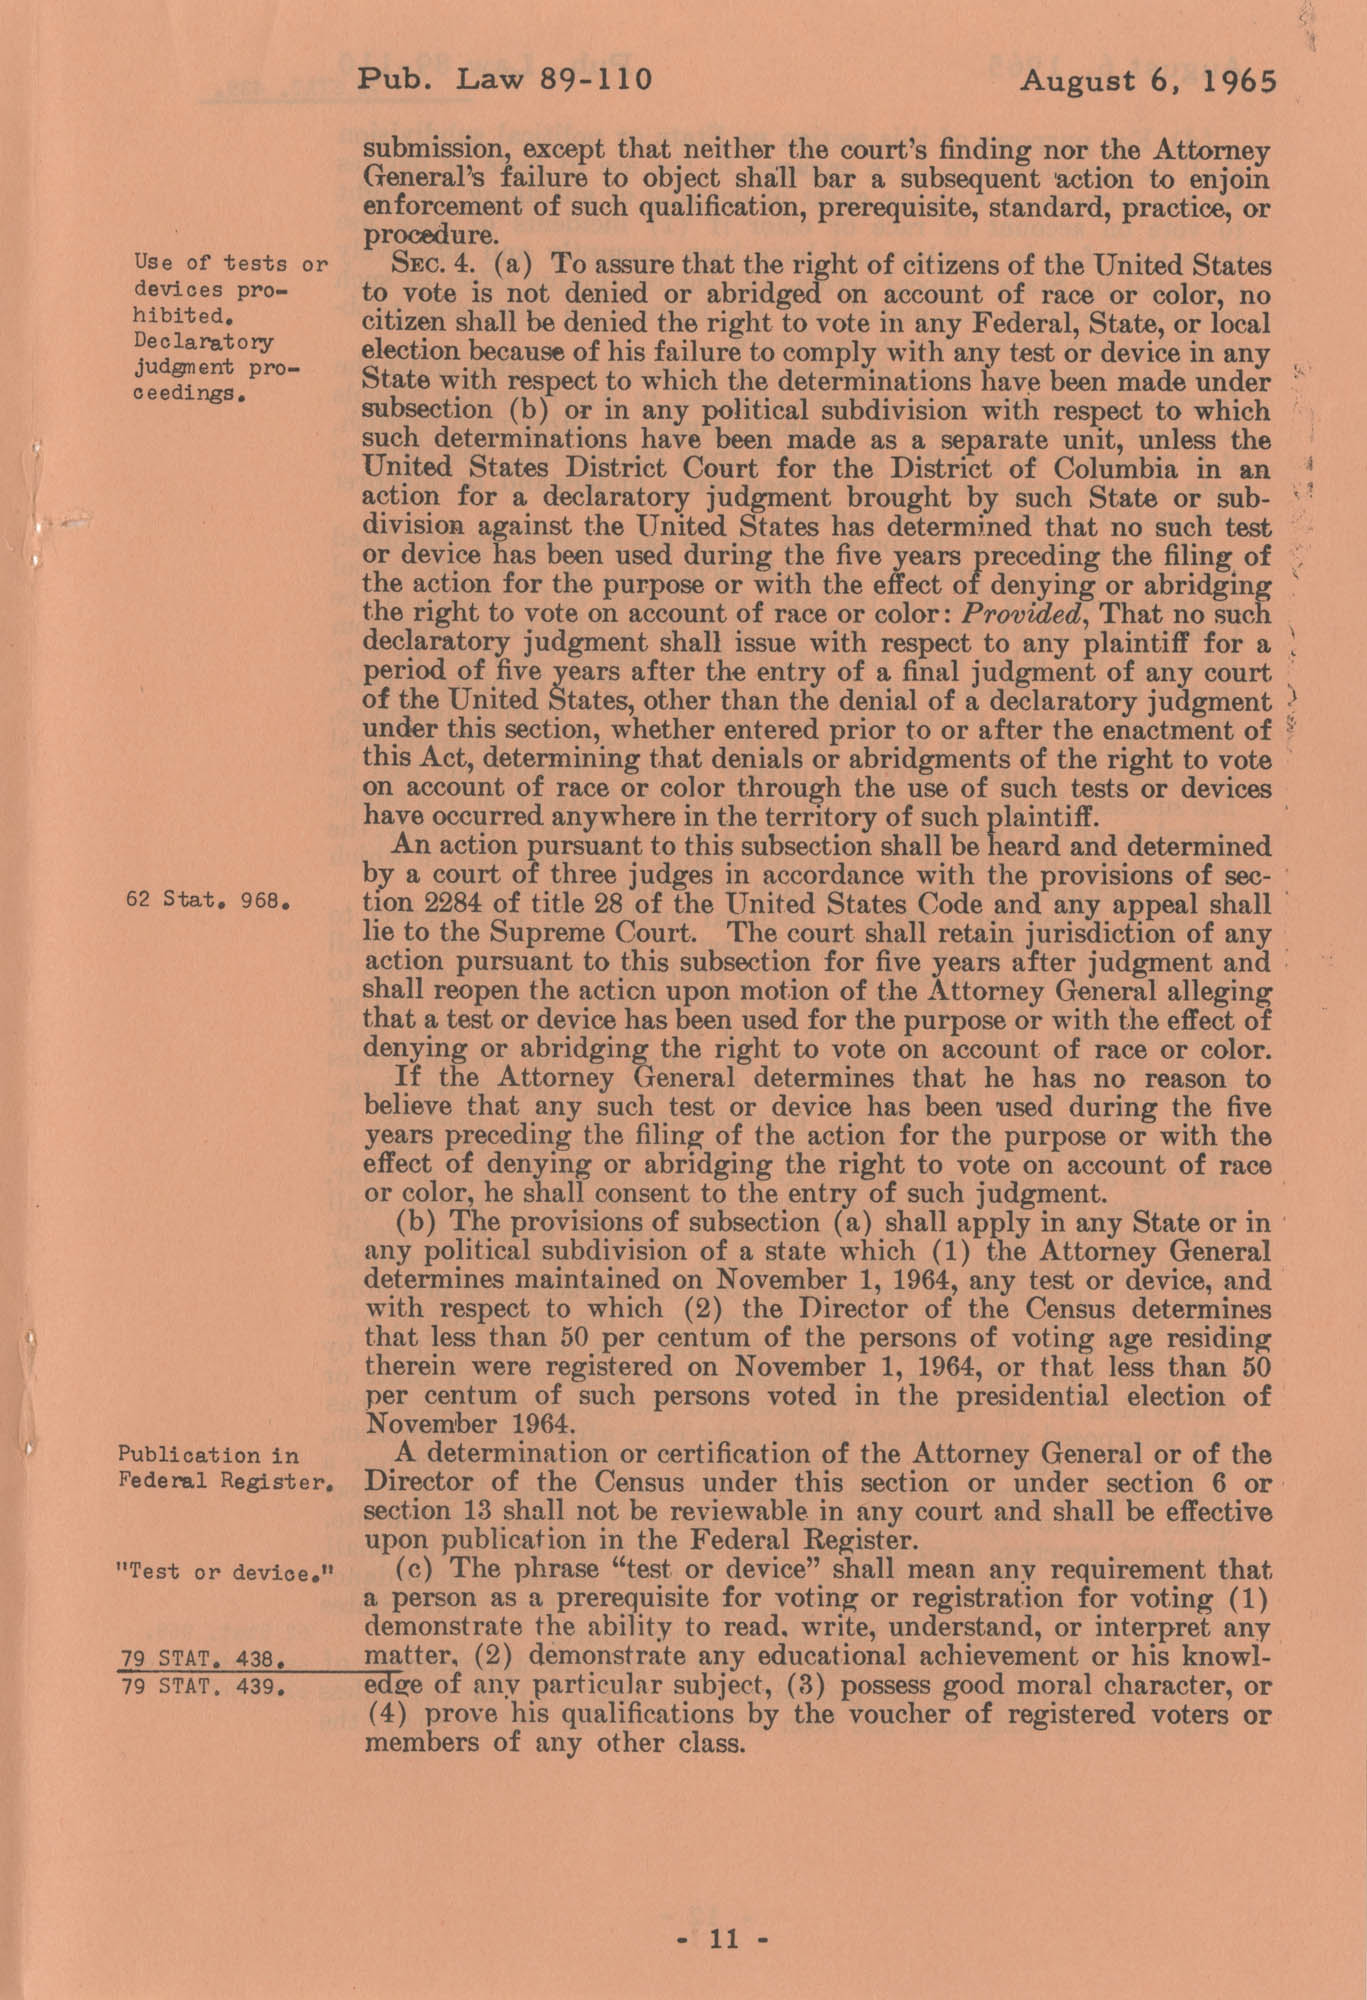 The Voting Rights Act of 1965, Page 11